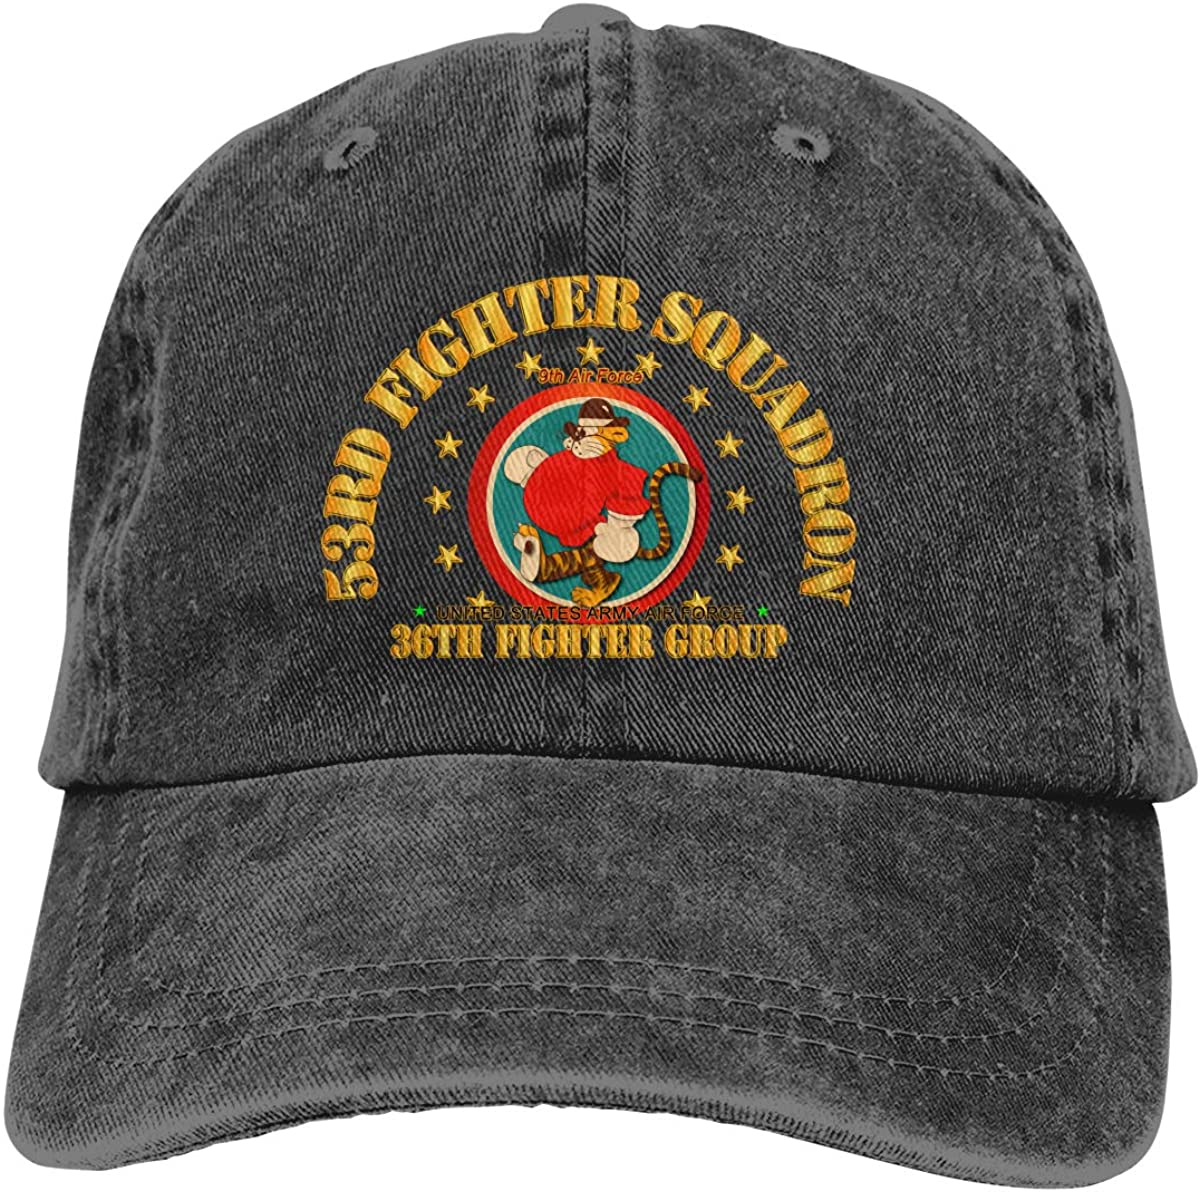 SLISL EIEI 53rd Fighter Squadron 36th Fighter Group 9th Air Force Adjustable Baseball Caps